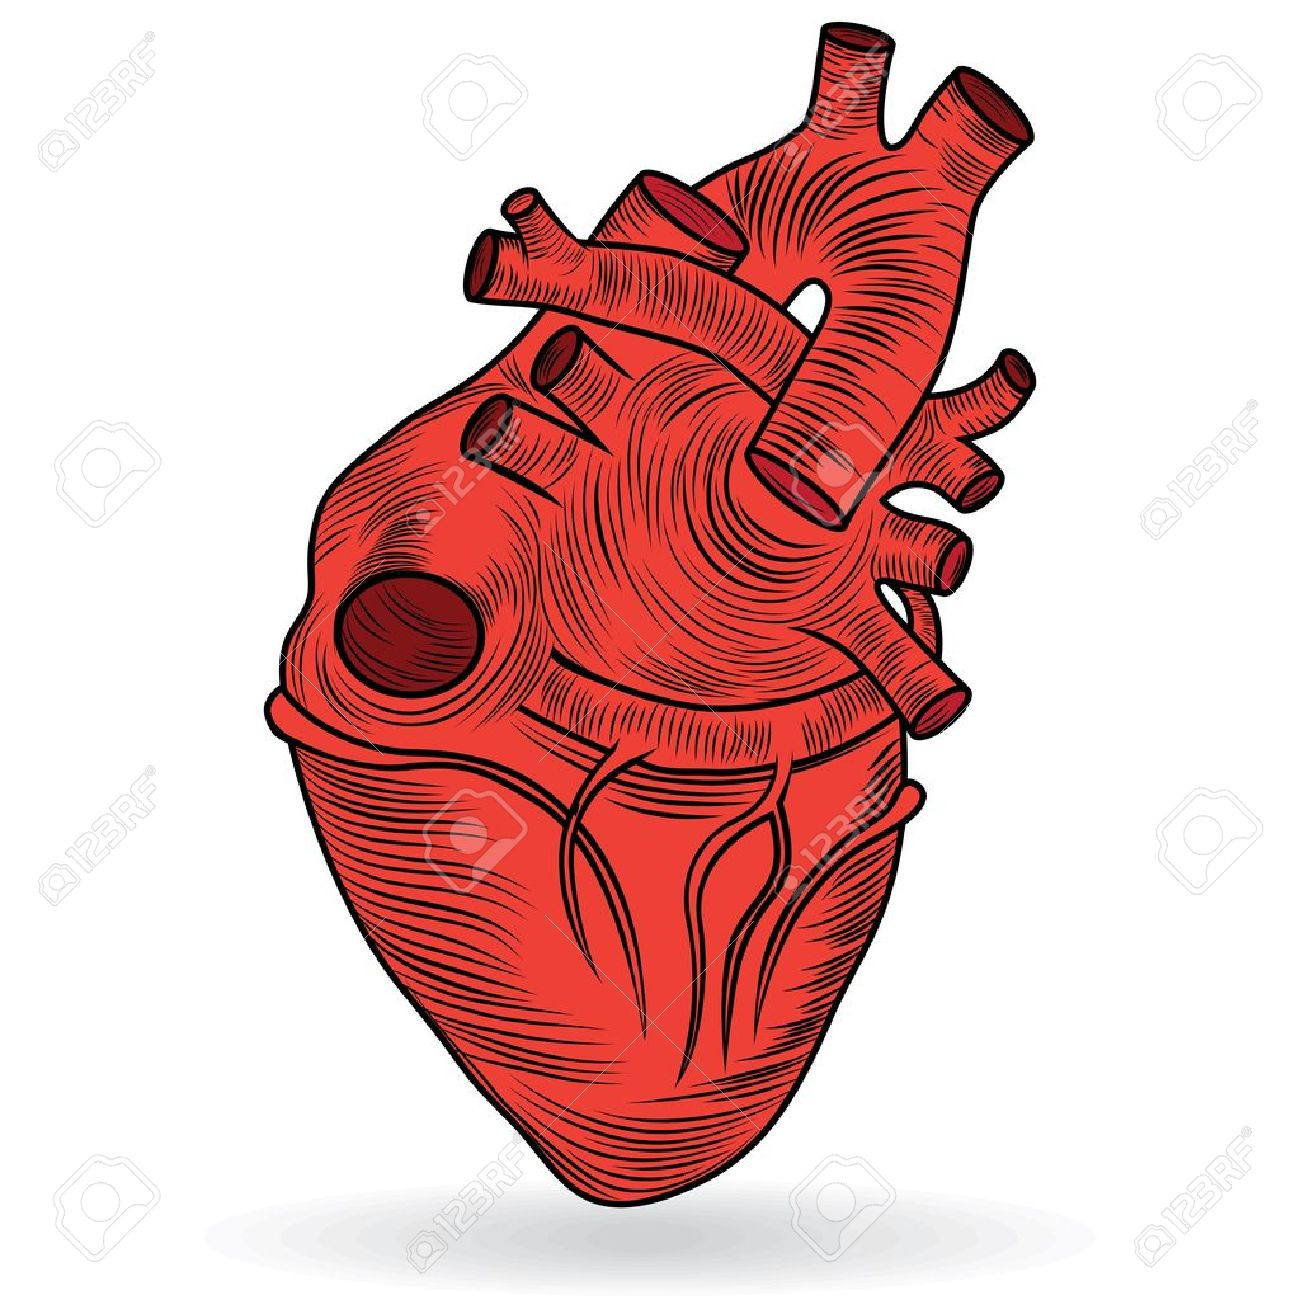 heart in body clipart - Clipground